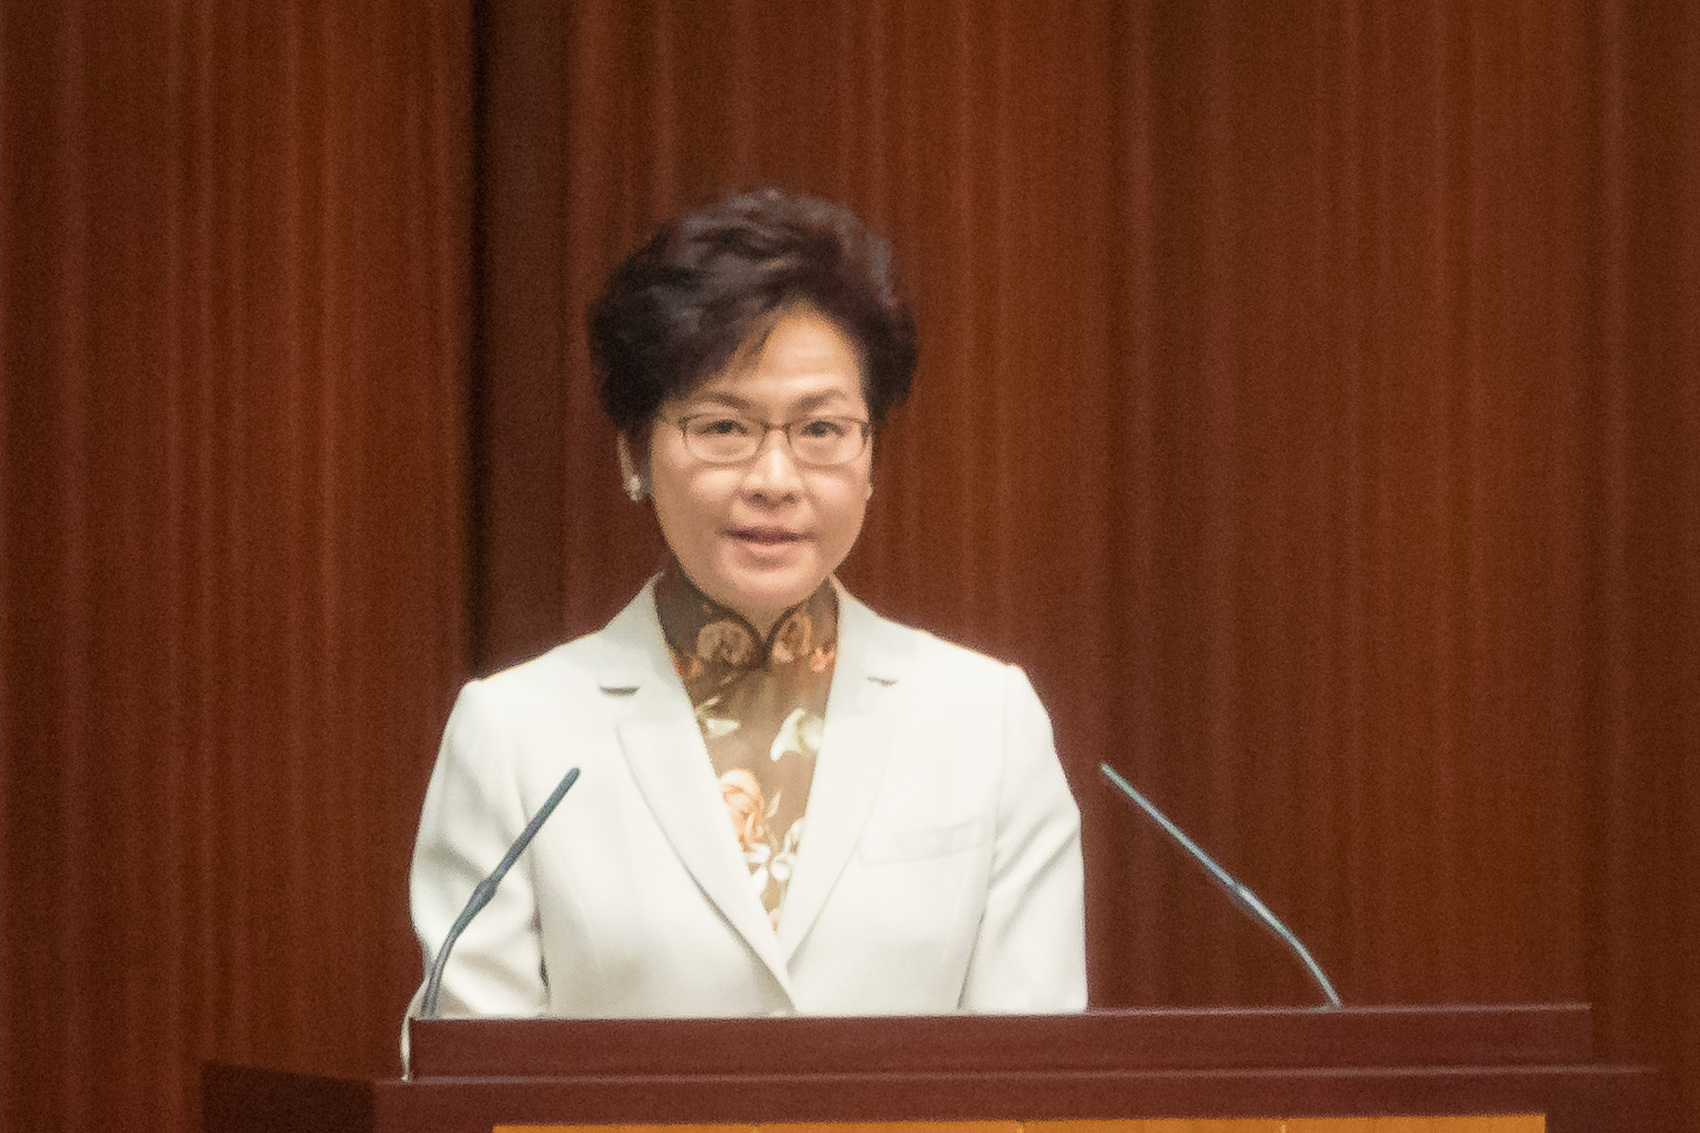 Hong Kong to launch new profits tax system next year